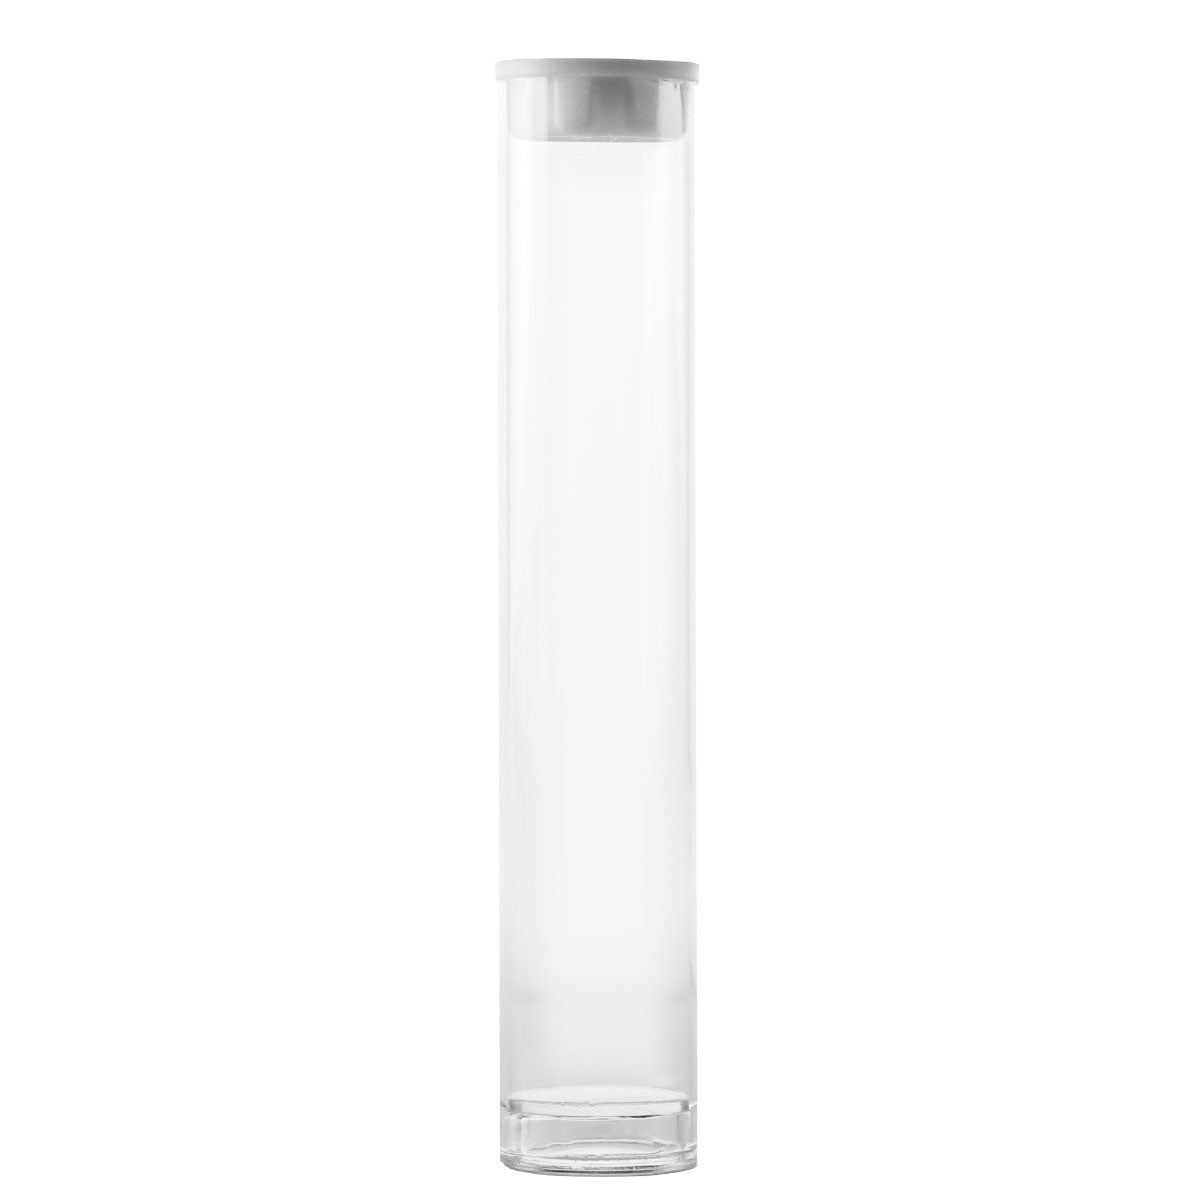 CCELL Storage Tube - Vapefiend UK